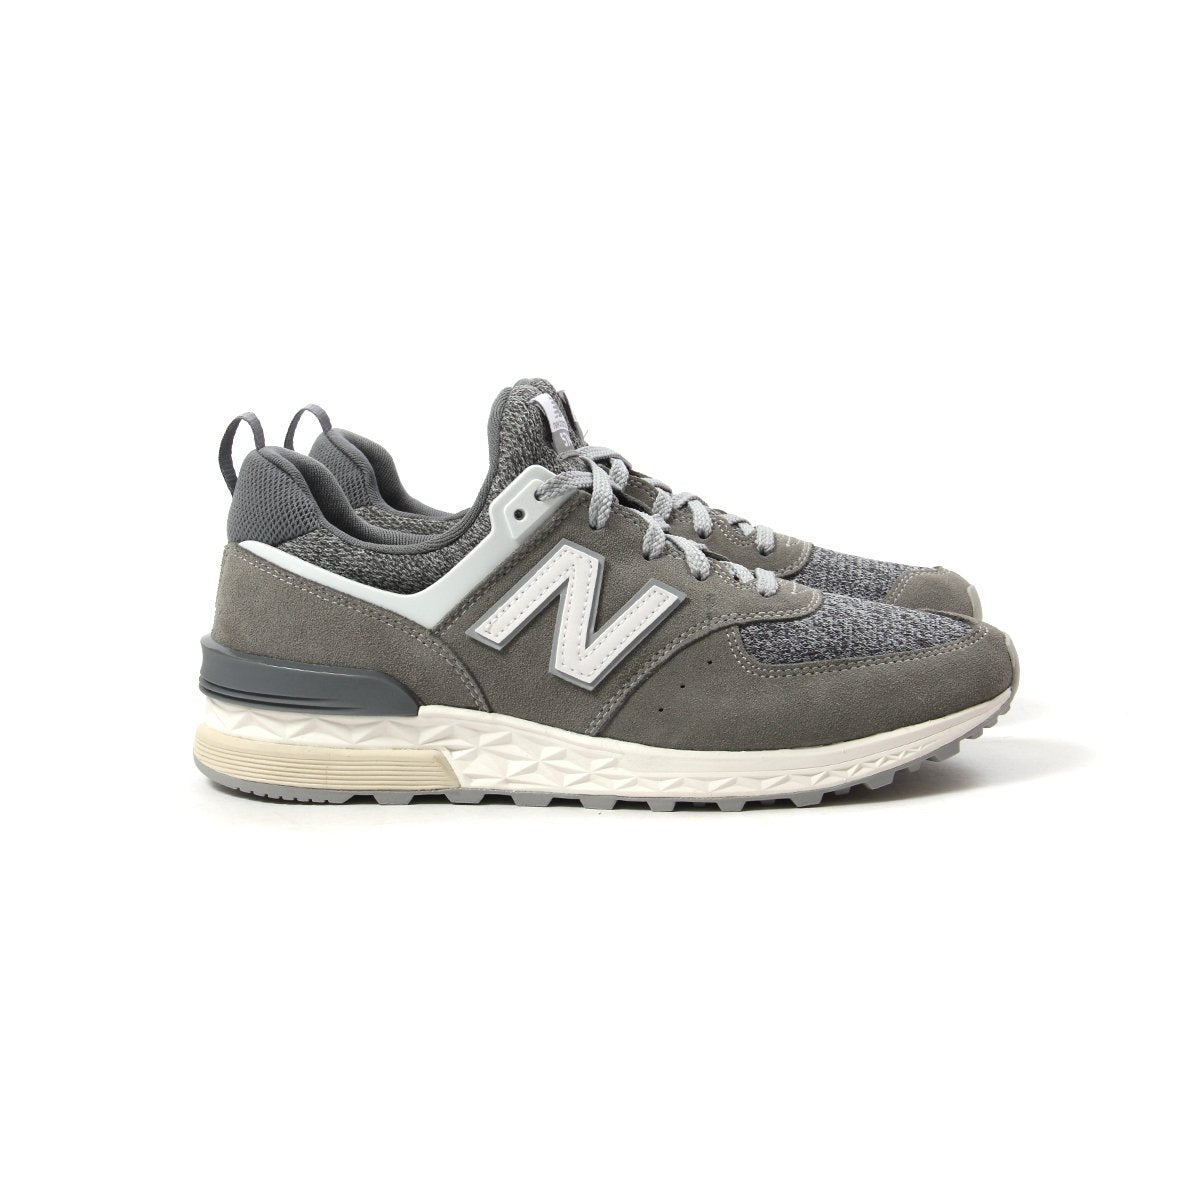 timeless design 9ae8f 1357e ConceptsIntl | New Balance 574 Sport (Grey/White)